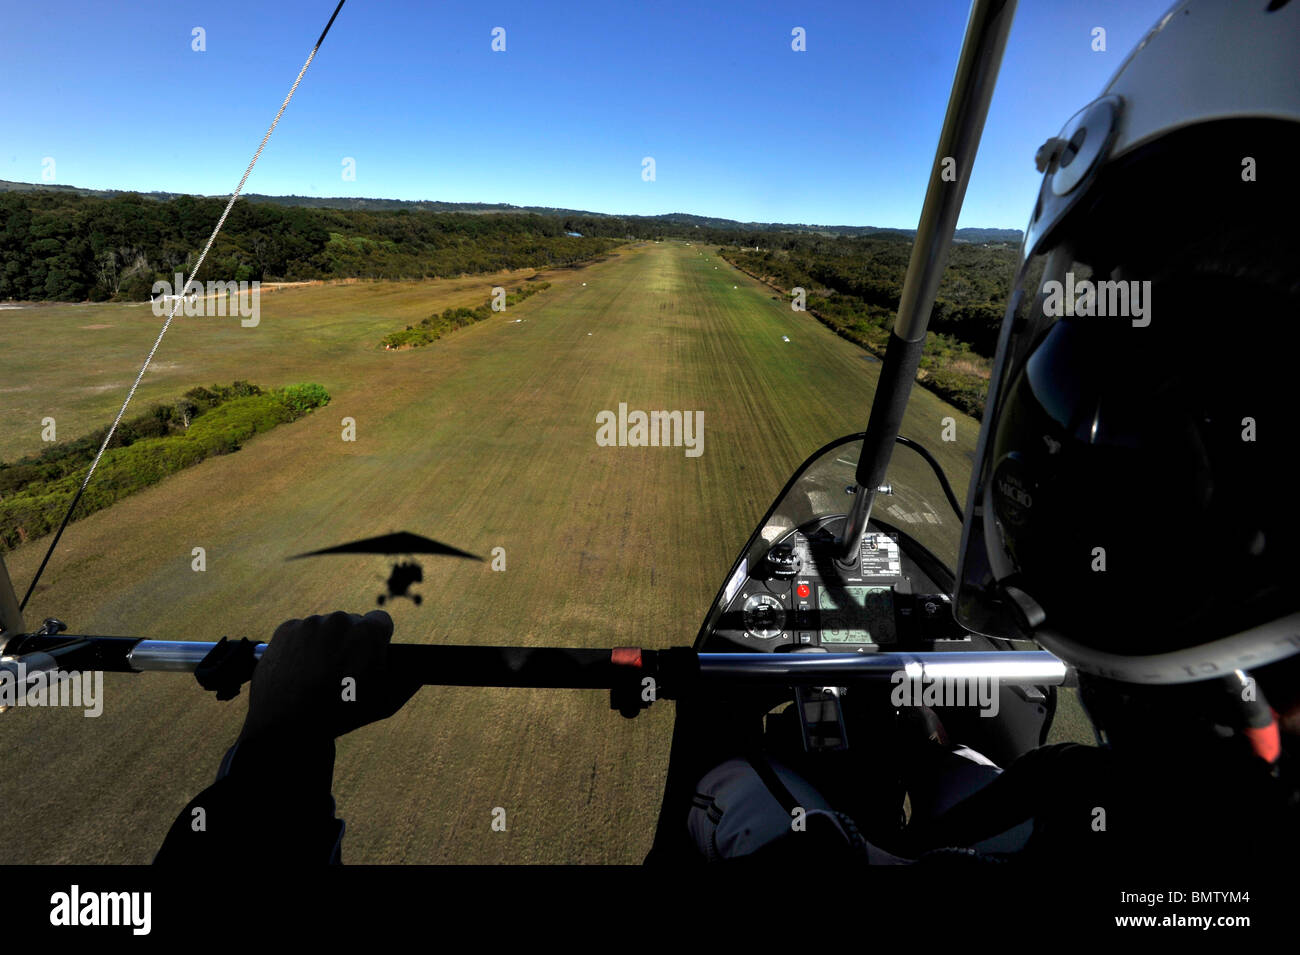 A microlight aircraft approaches a runway - Stock Image